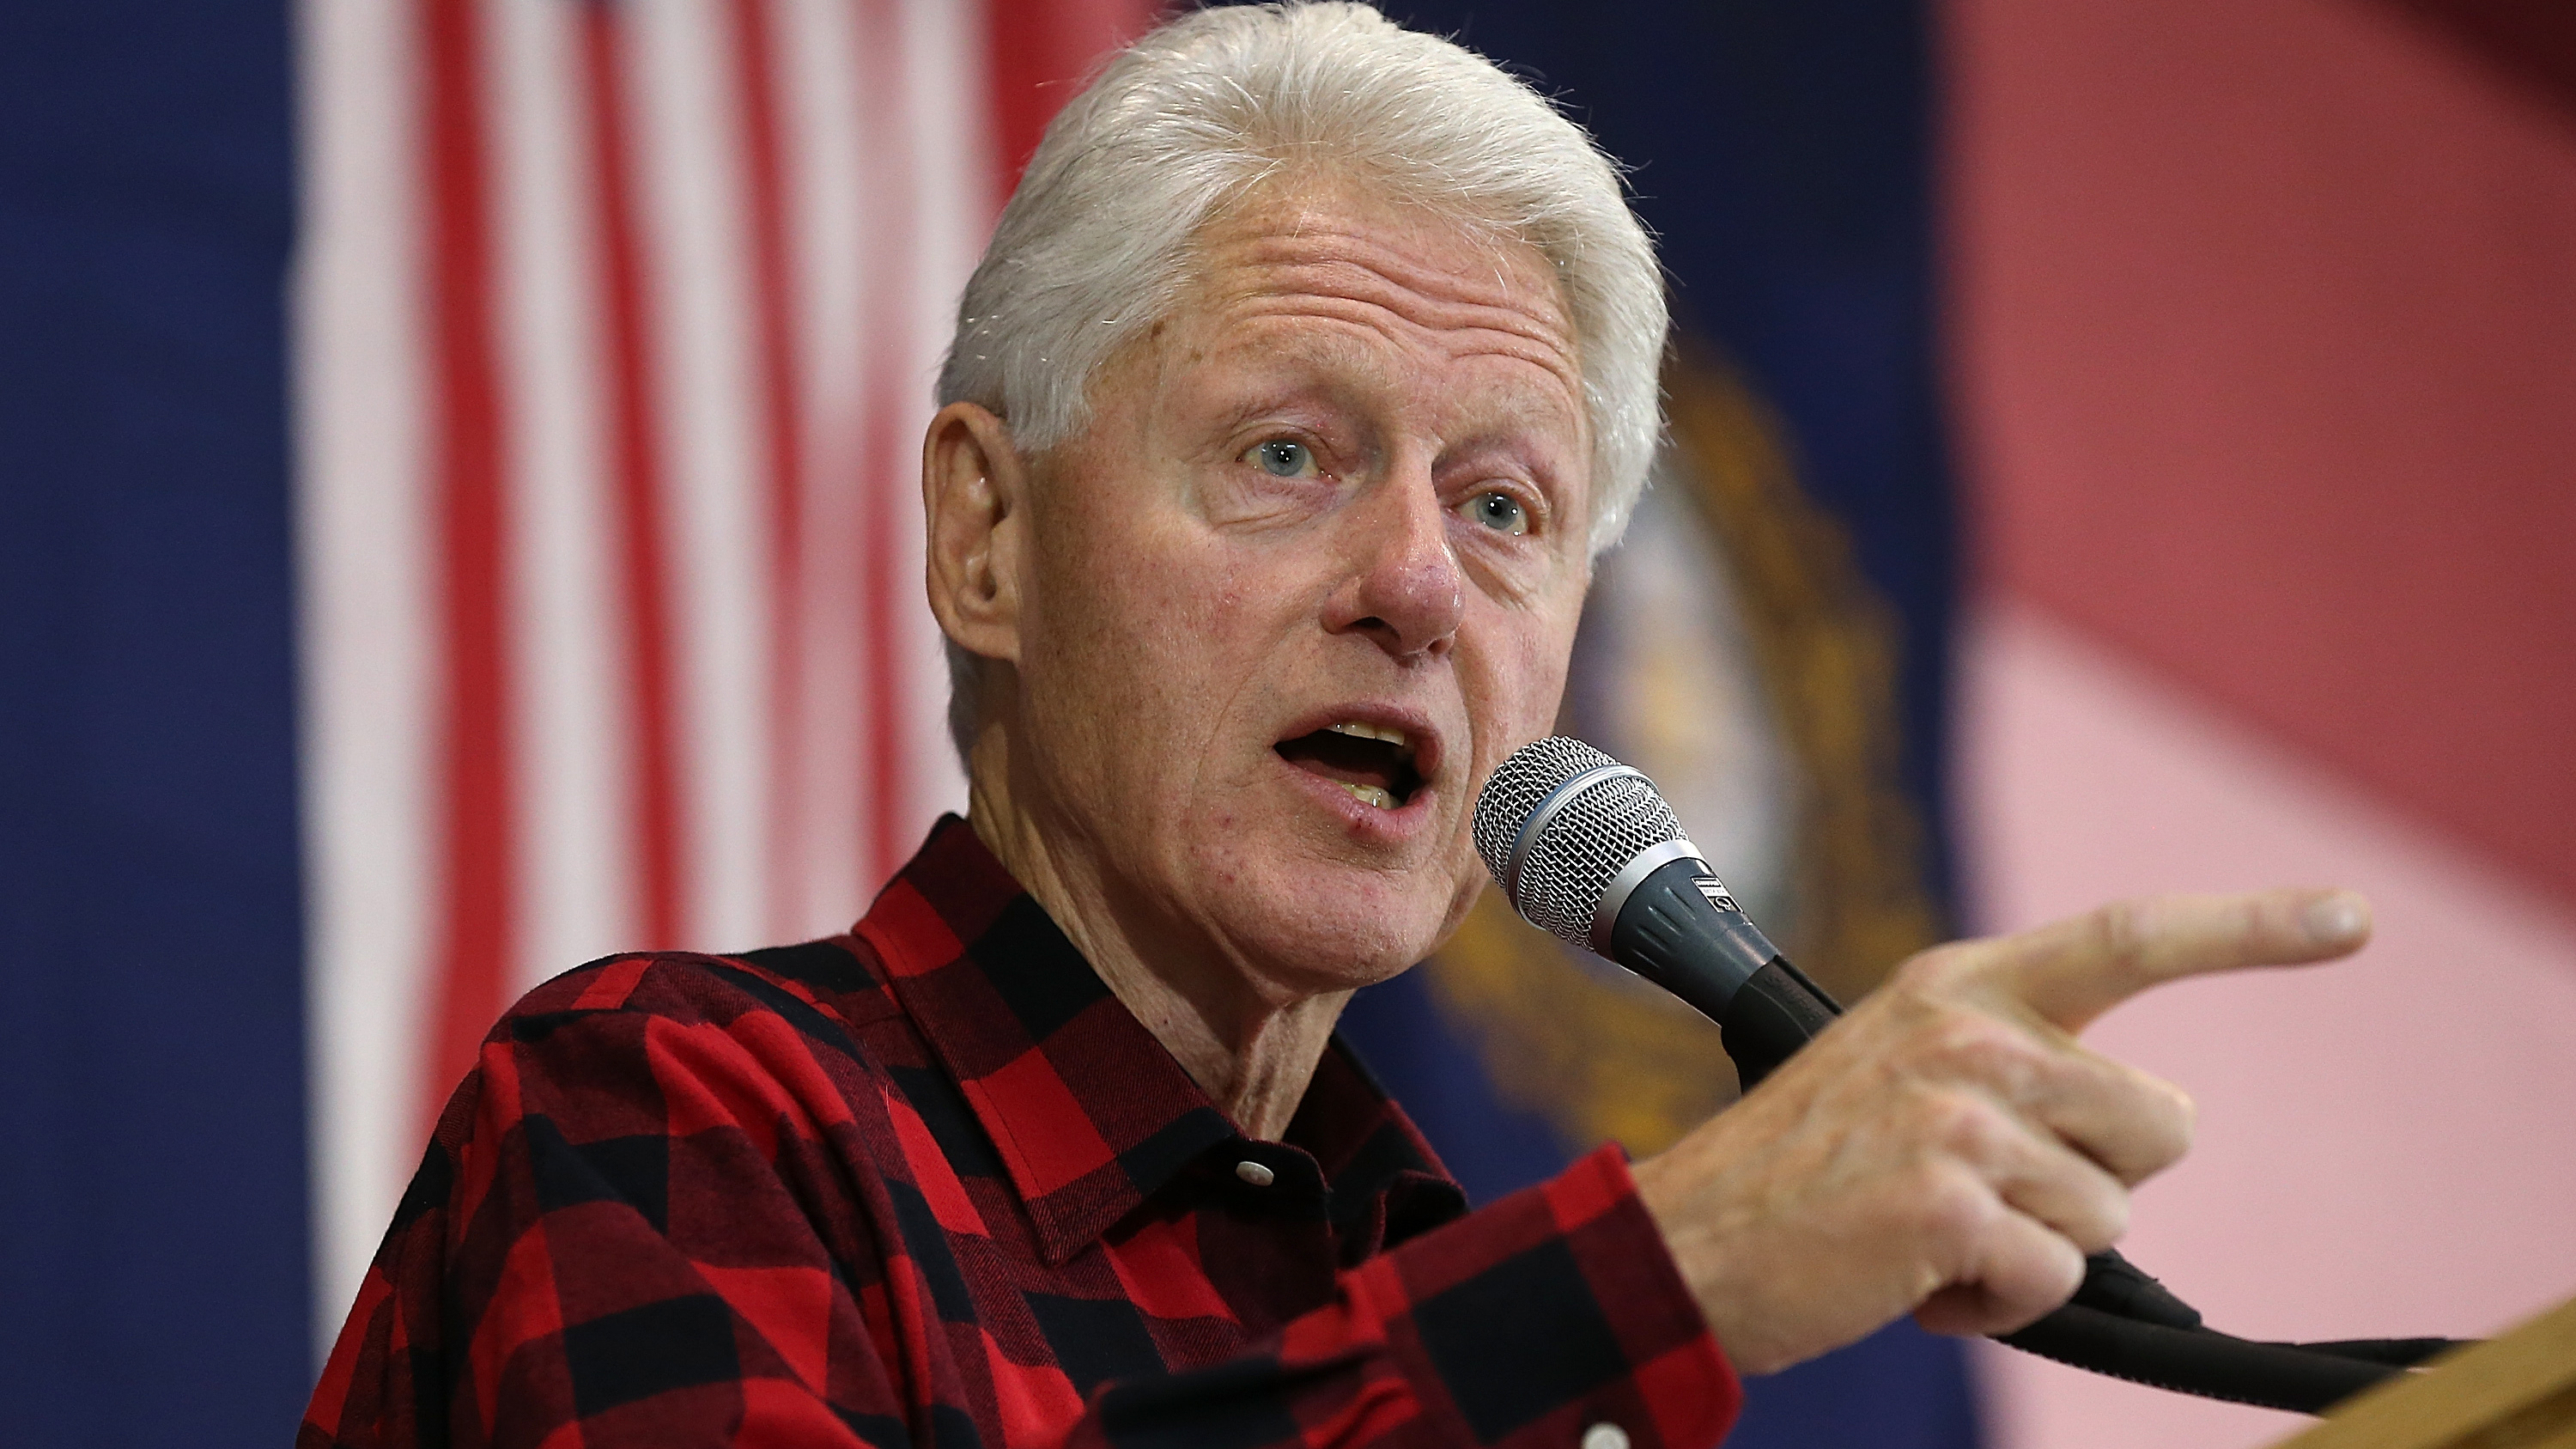 Former President Bill Clinton campaigns for his wife, Hillary Clinton, on Sundayin Milford, NH. (Win McNamee/Getty Images)